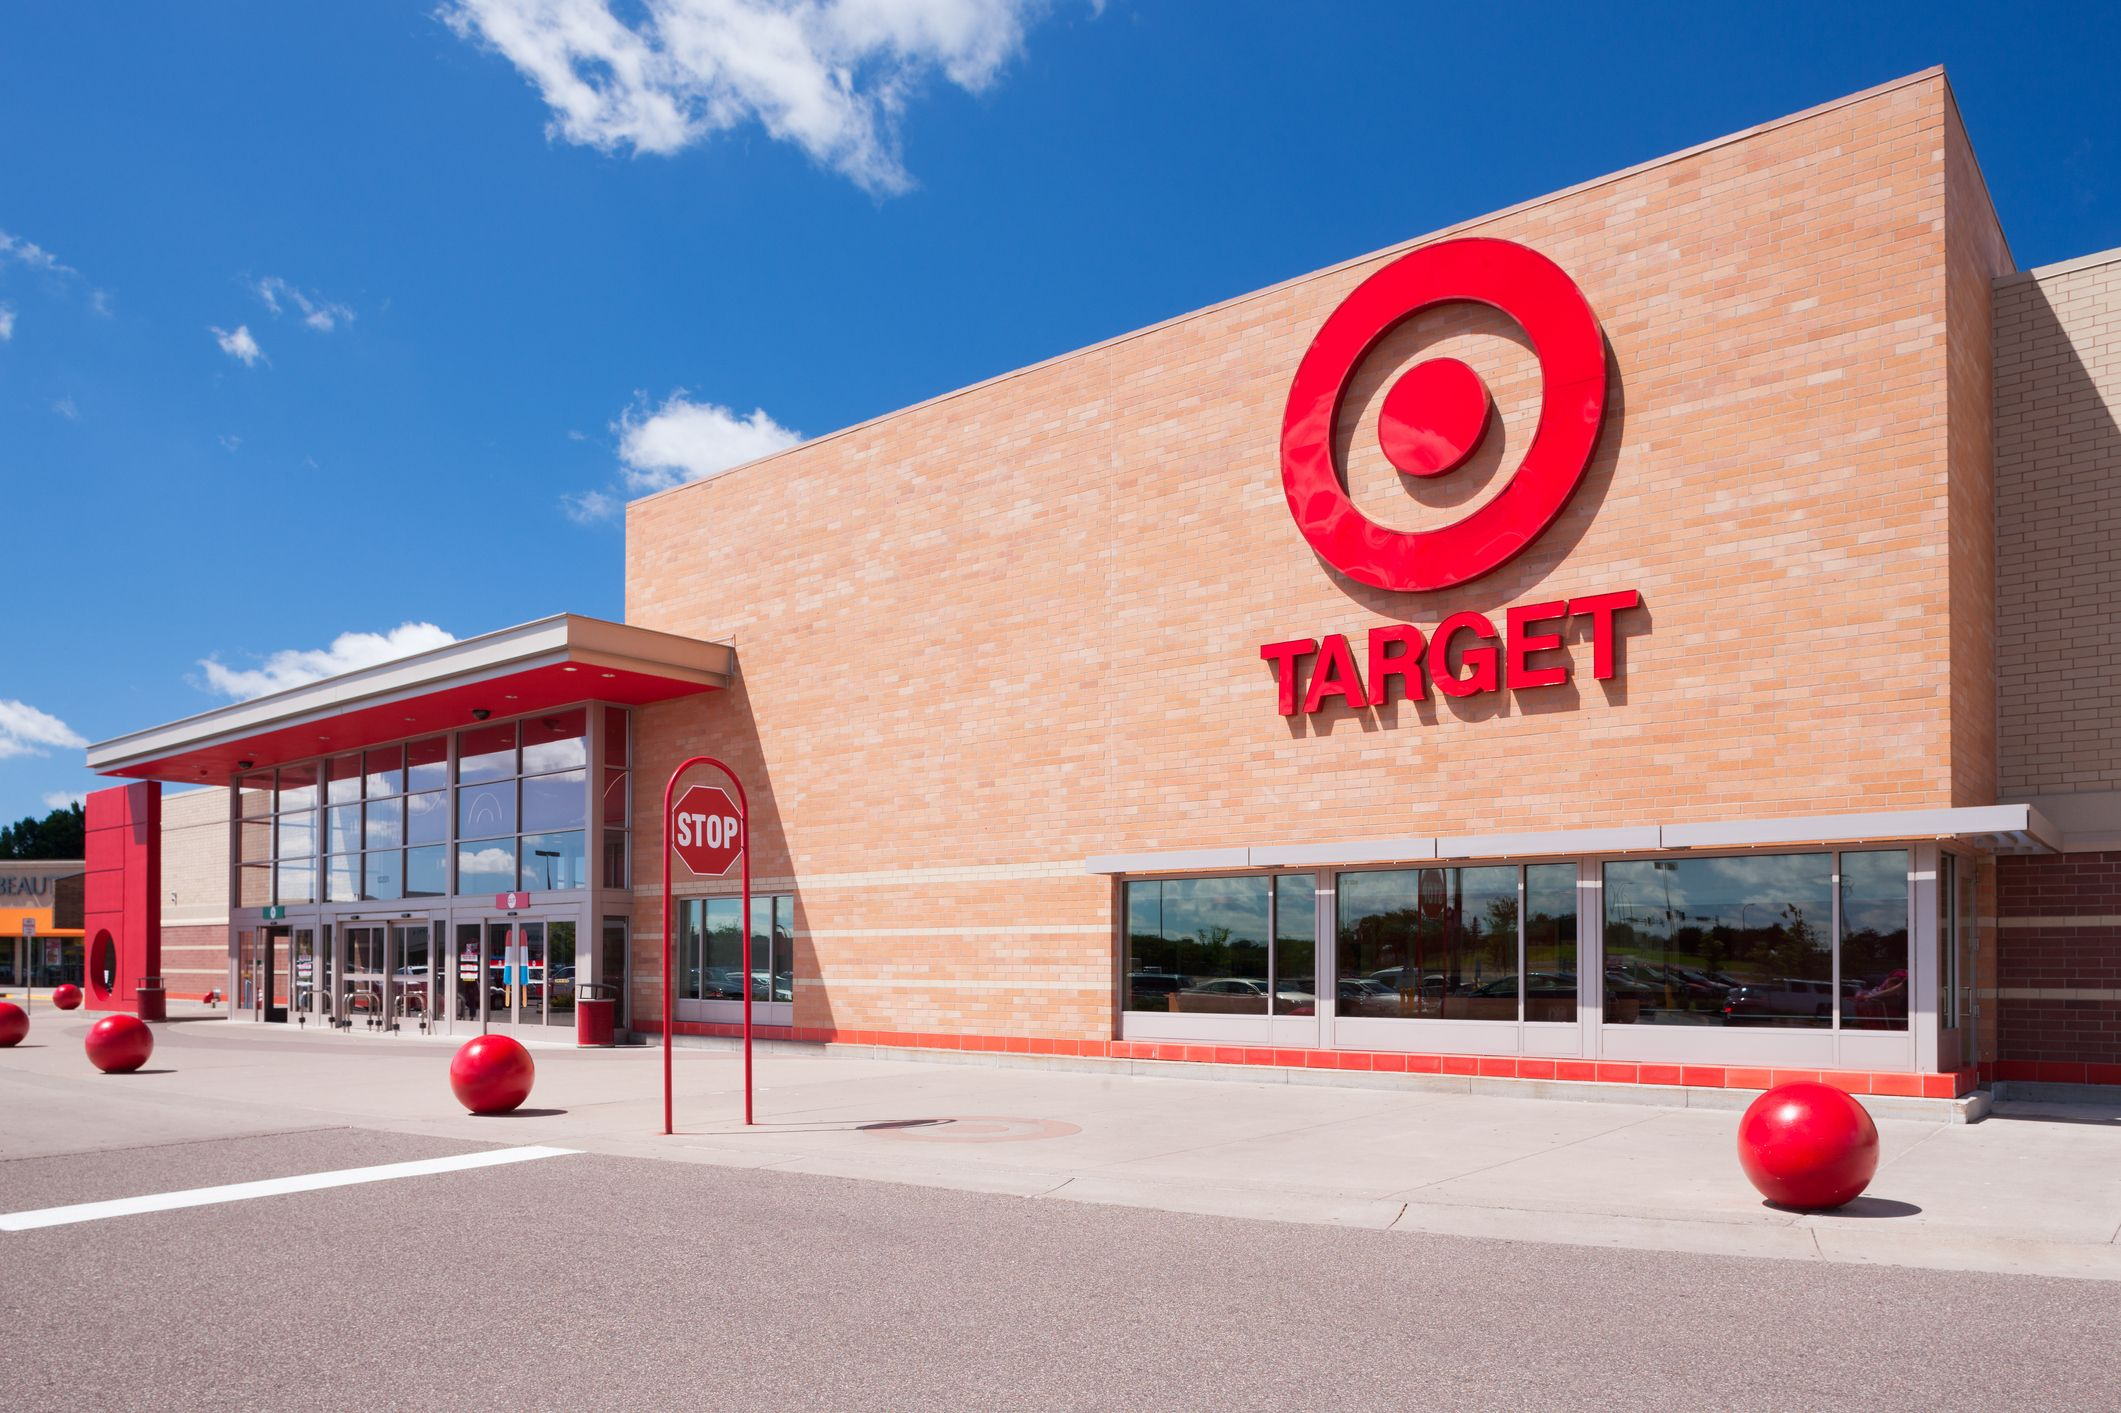 Target Christmas Commercial 2018.Is Target Open On Christmas Day 2019 Target Christmas And